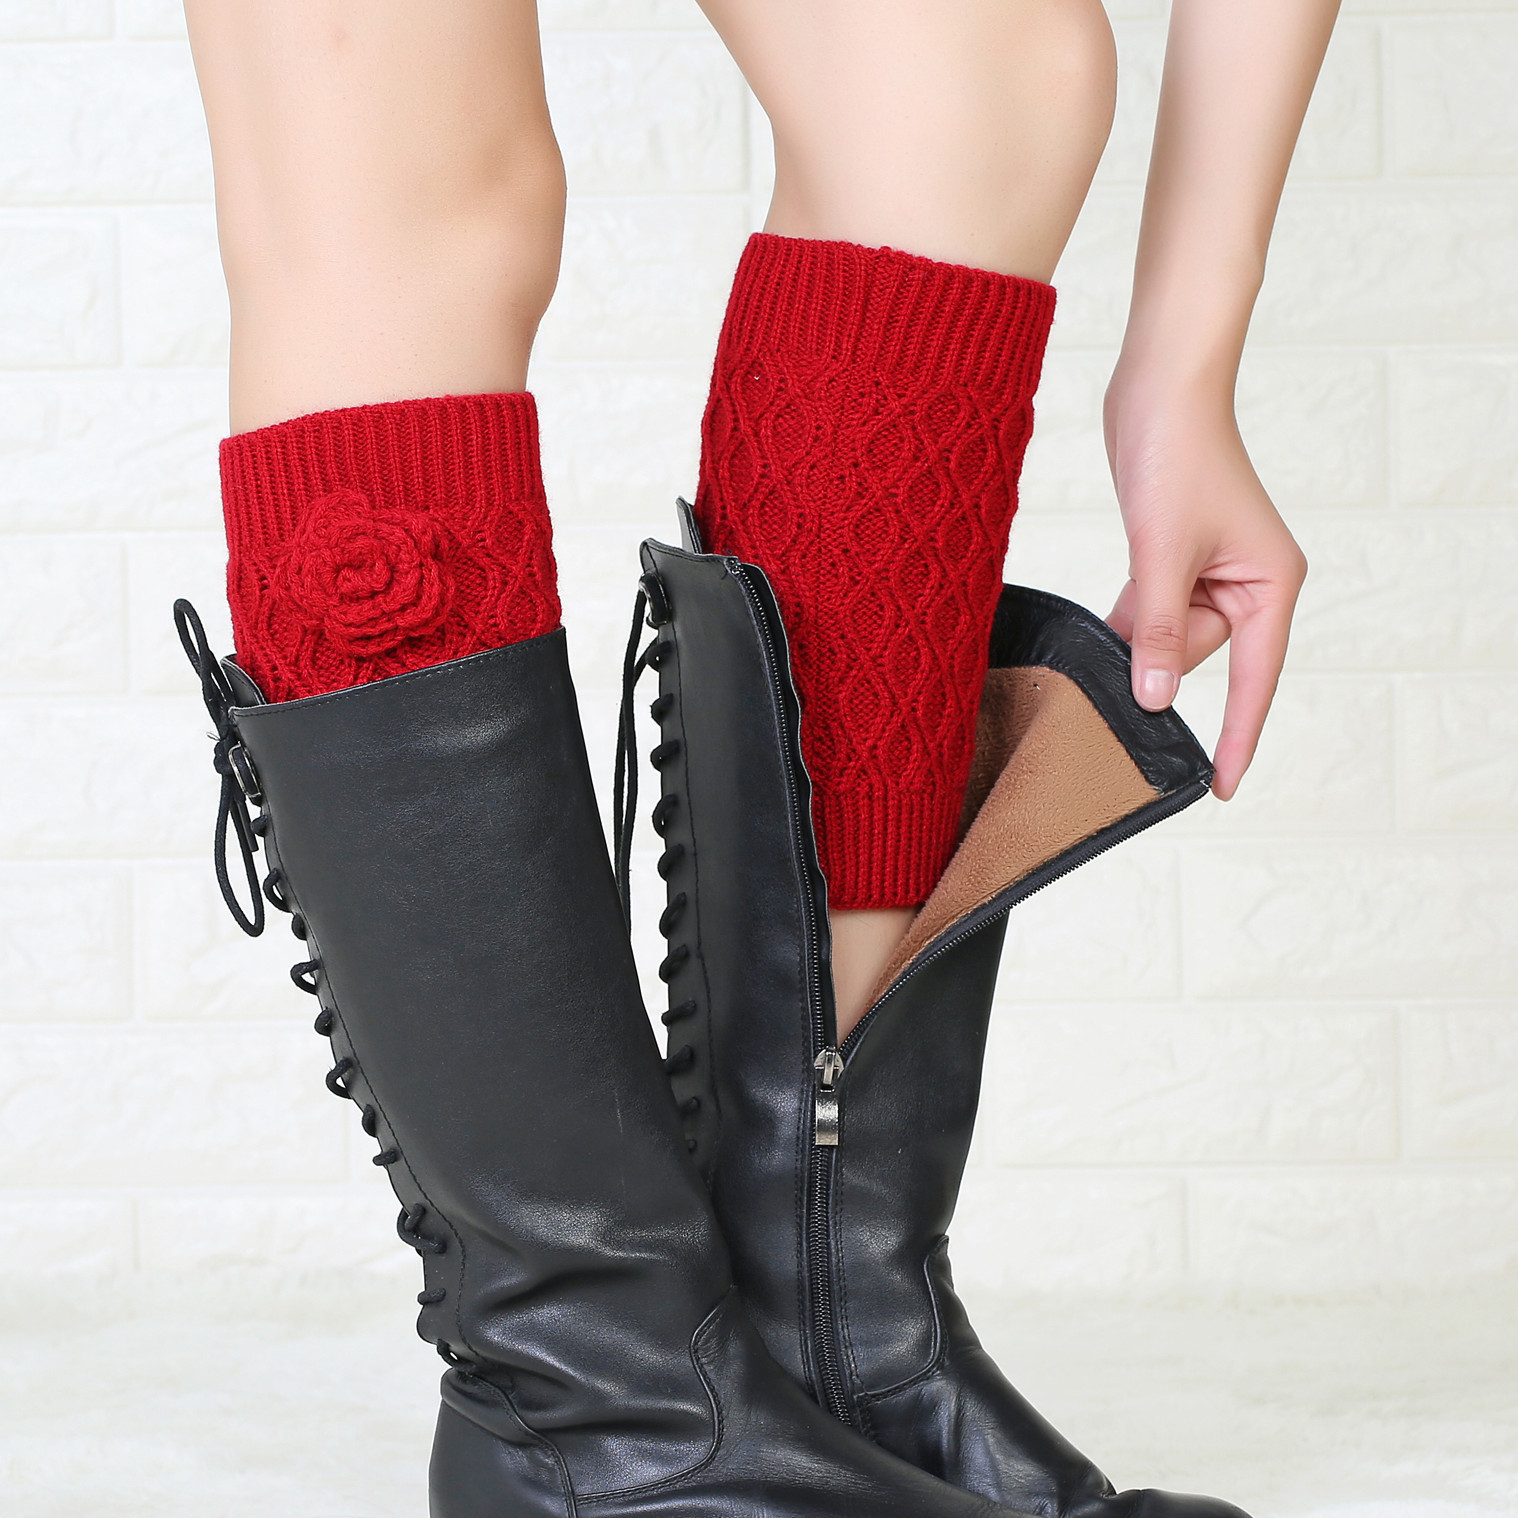 Fashion Ladies Autumn And Winter New Wool Socks Set Handmade Flowers In The Sleeves Knitted Warm Boots Cover Leggings